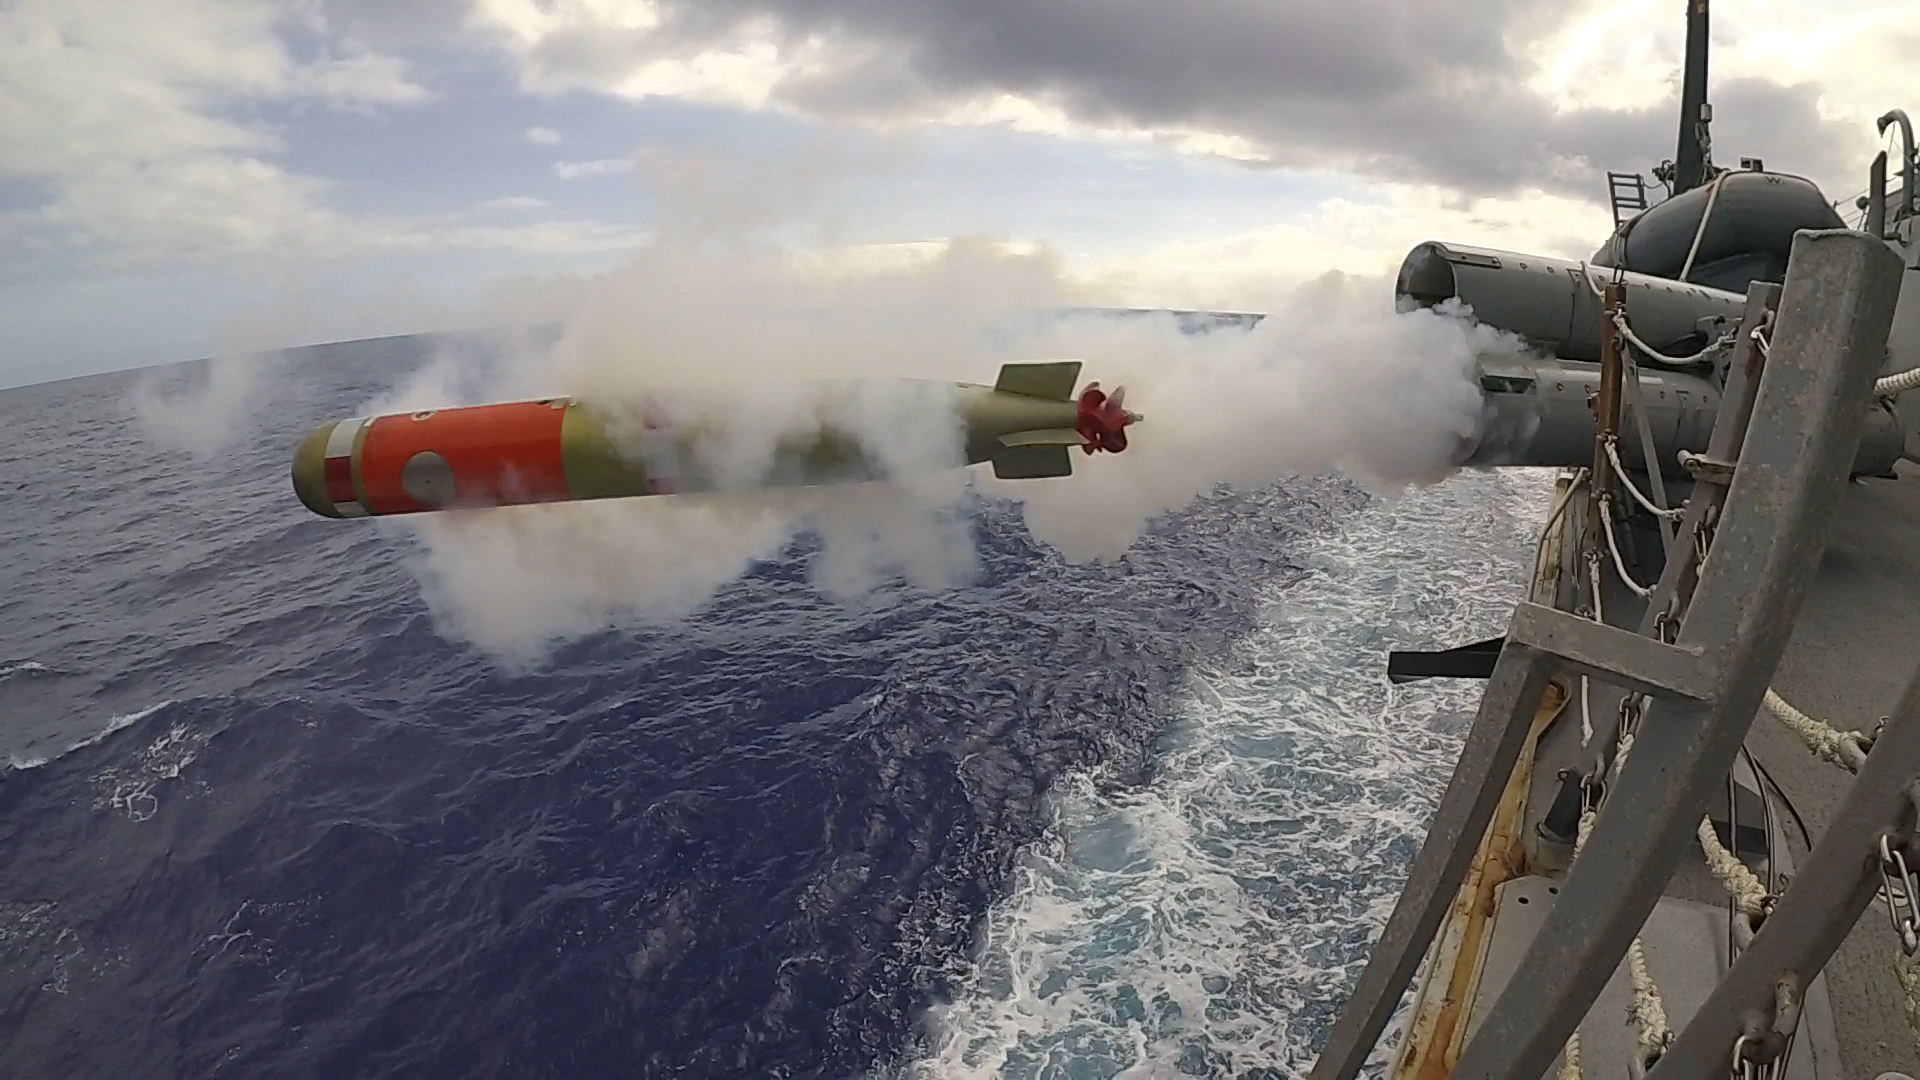 A mark 46 shallow water exercise torpedo is fired from the weather deck of the Arleigh Burke-class guided-missile destroyer USS McCampbell (DDG 85) while operating in the Philippine Sea on March 12, 2019, during a live-fire exercise. (Mass Communication Specialist 2nd Class John Harris/Navy)